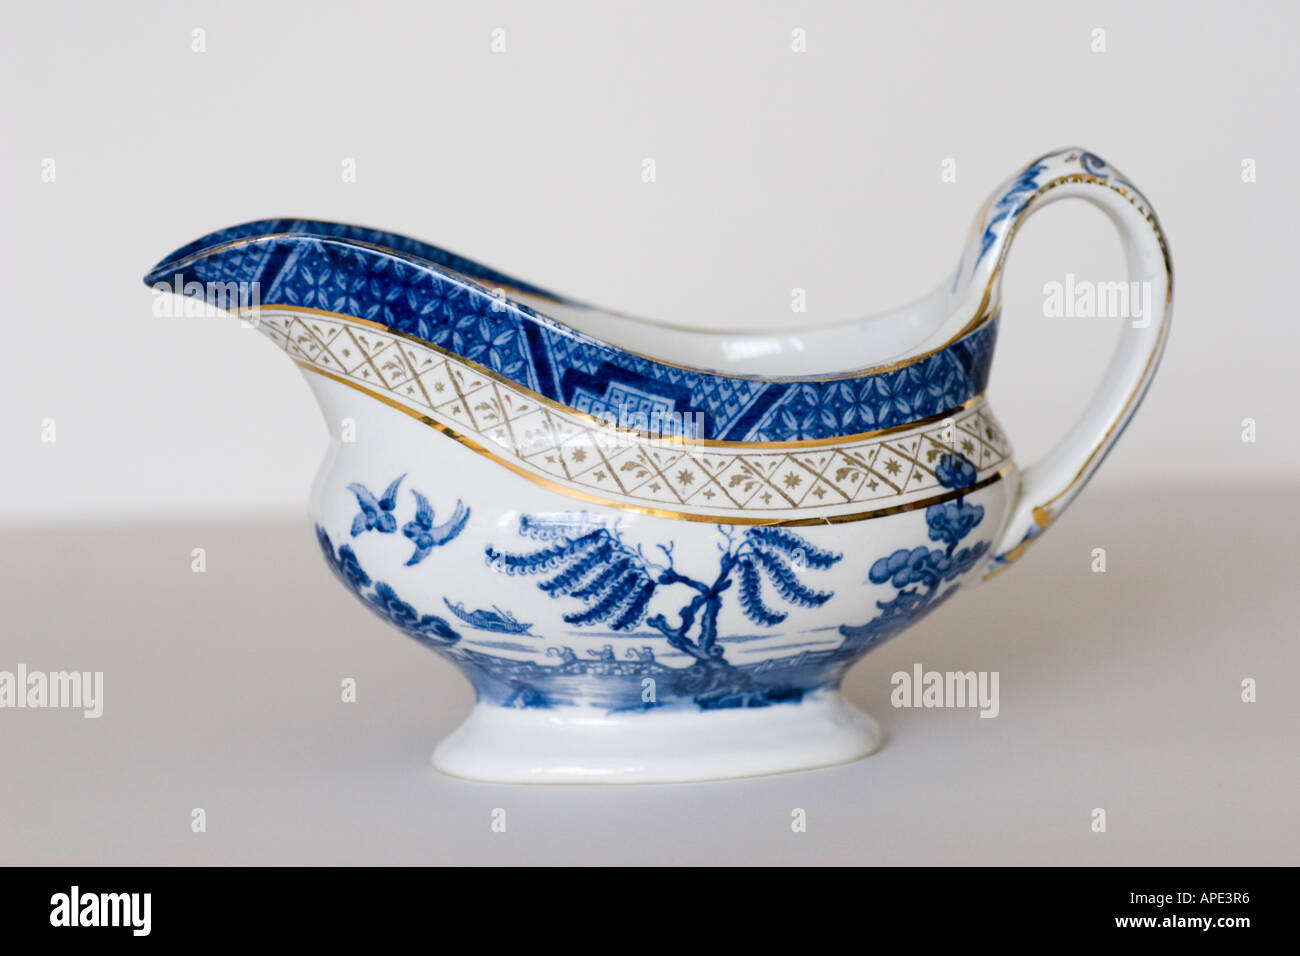 Booths China gravy boat made in England GB UK - Stock Image